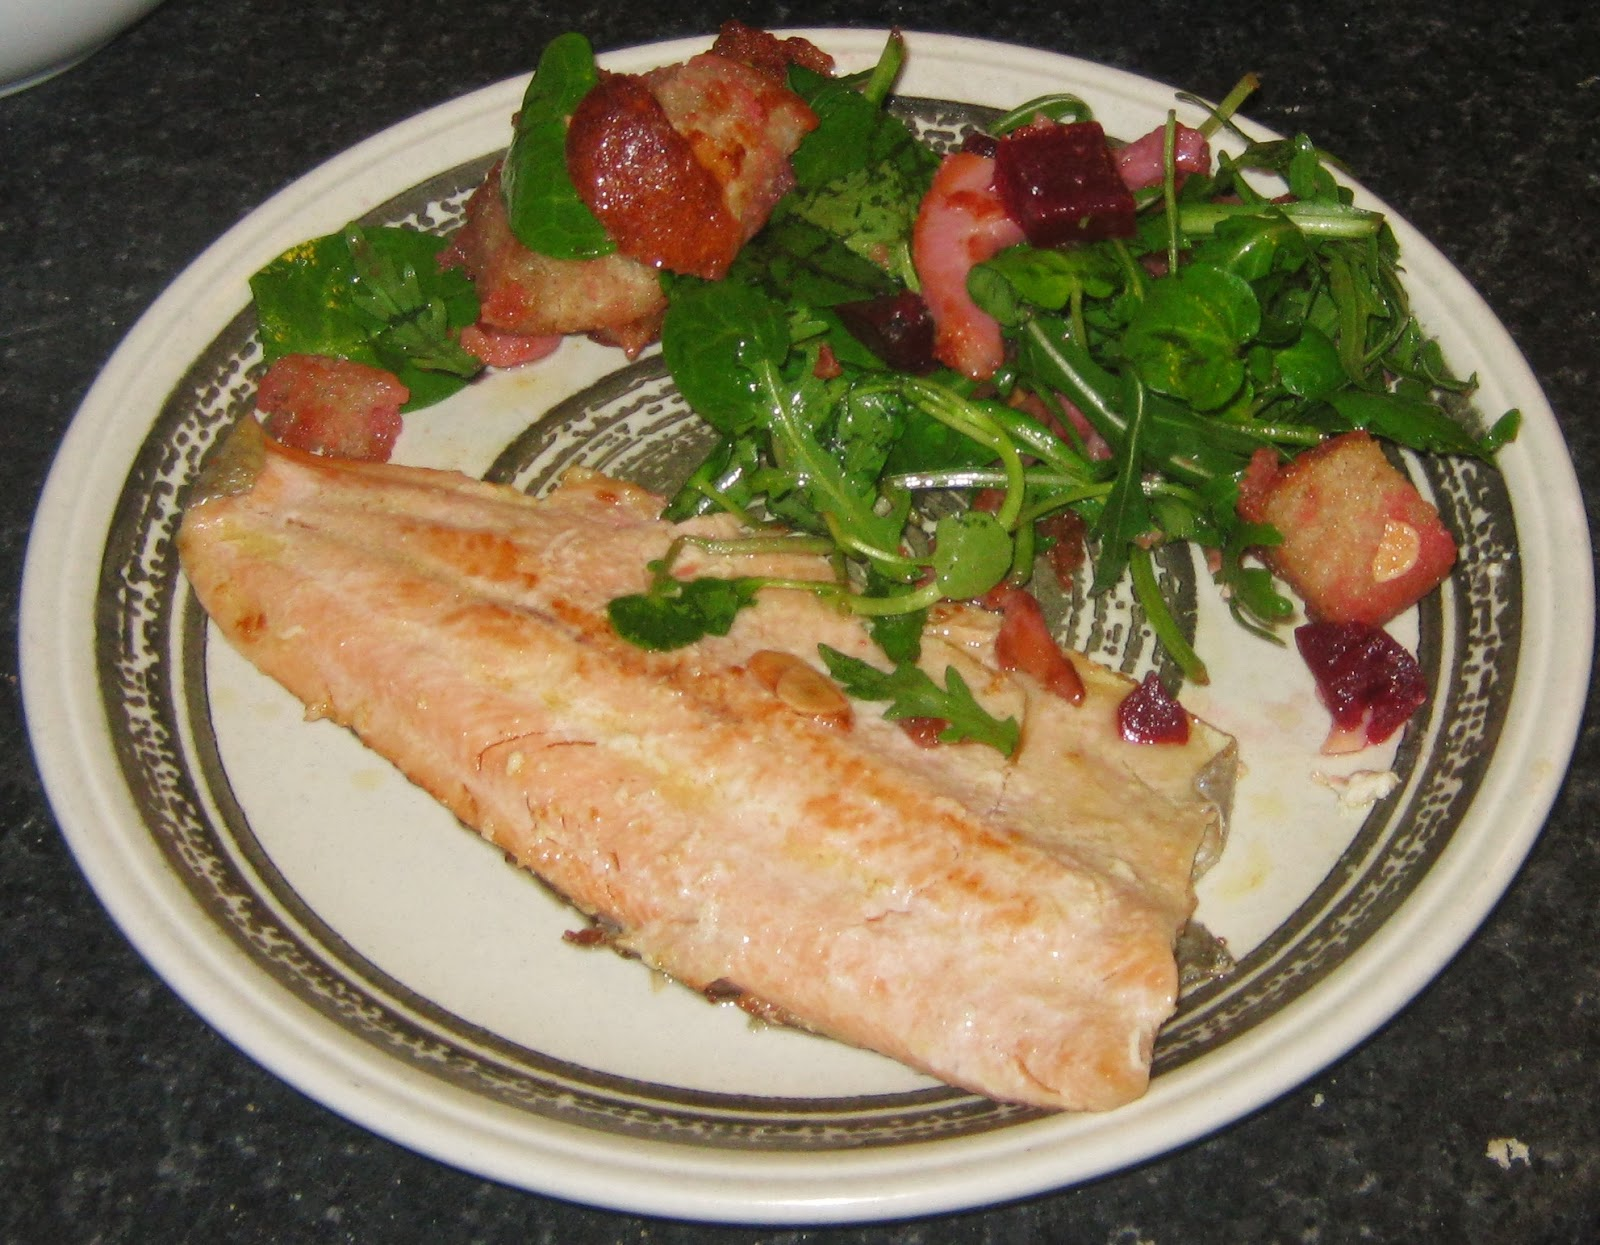 Pan-fried trout with mixed salad, bacon, almonds and beetroot